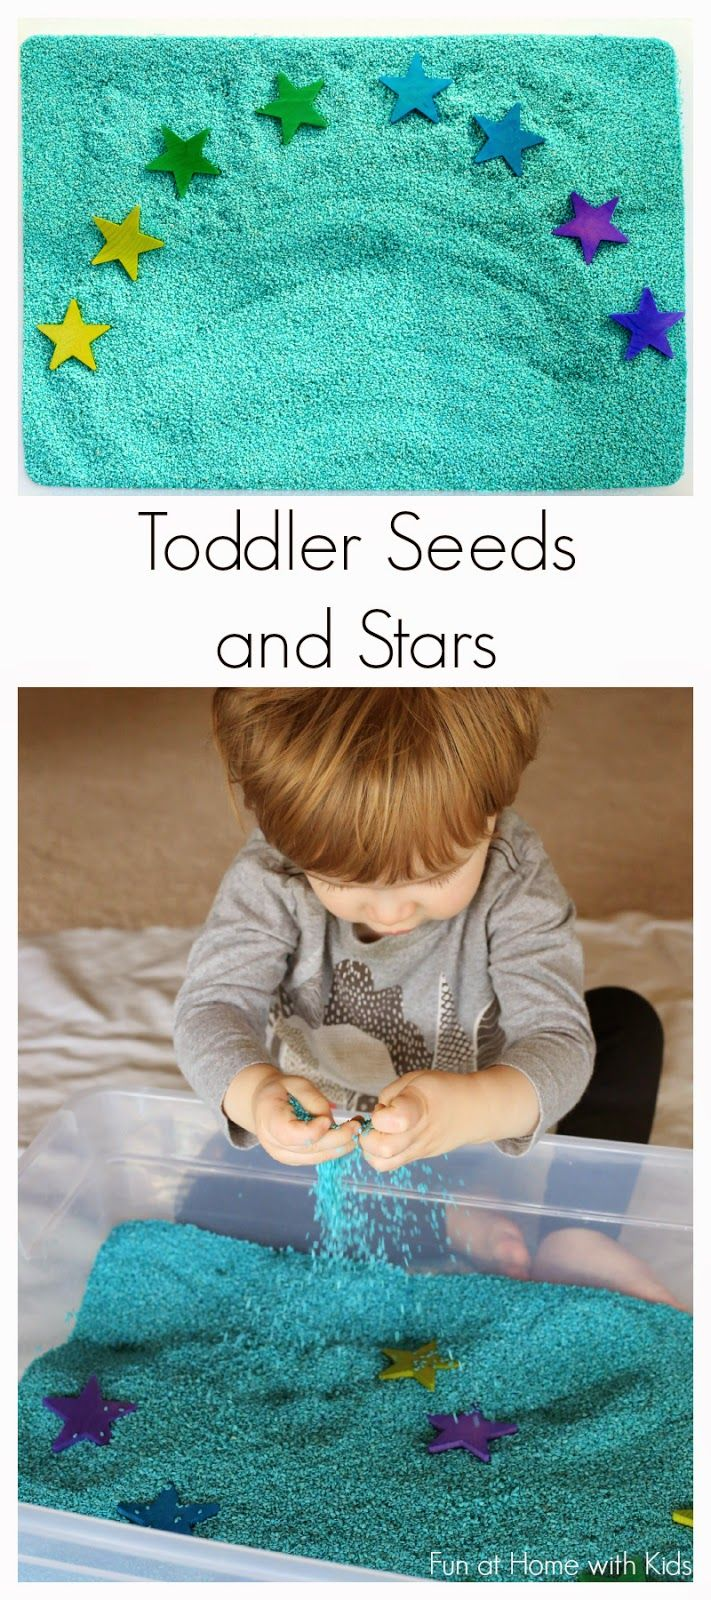 91 best Sensorial images on Pinterest | Sensory activities, Day care ...